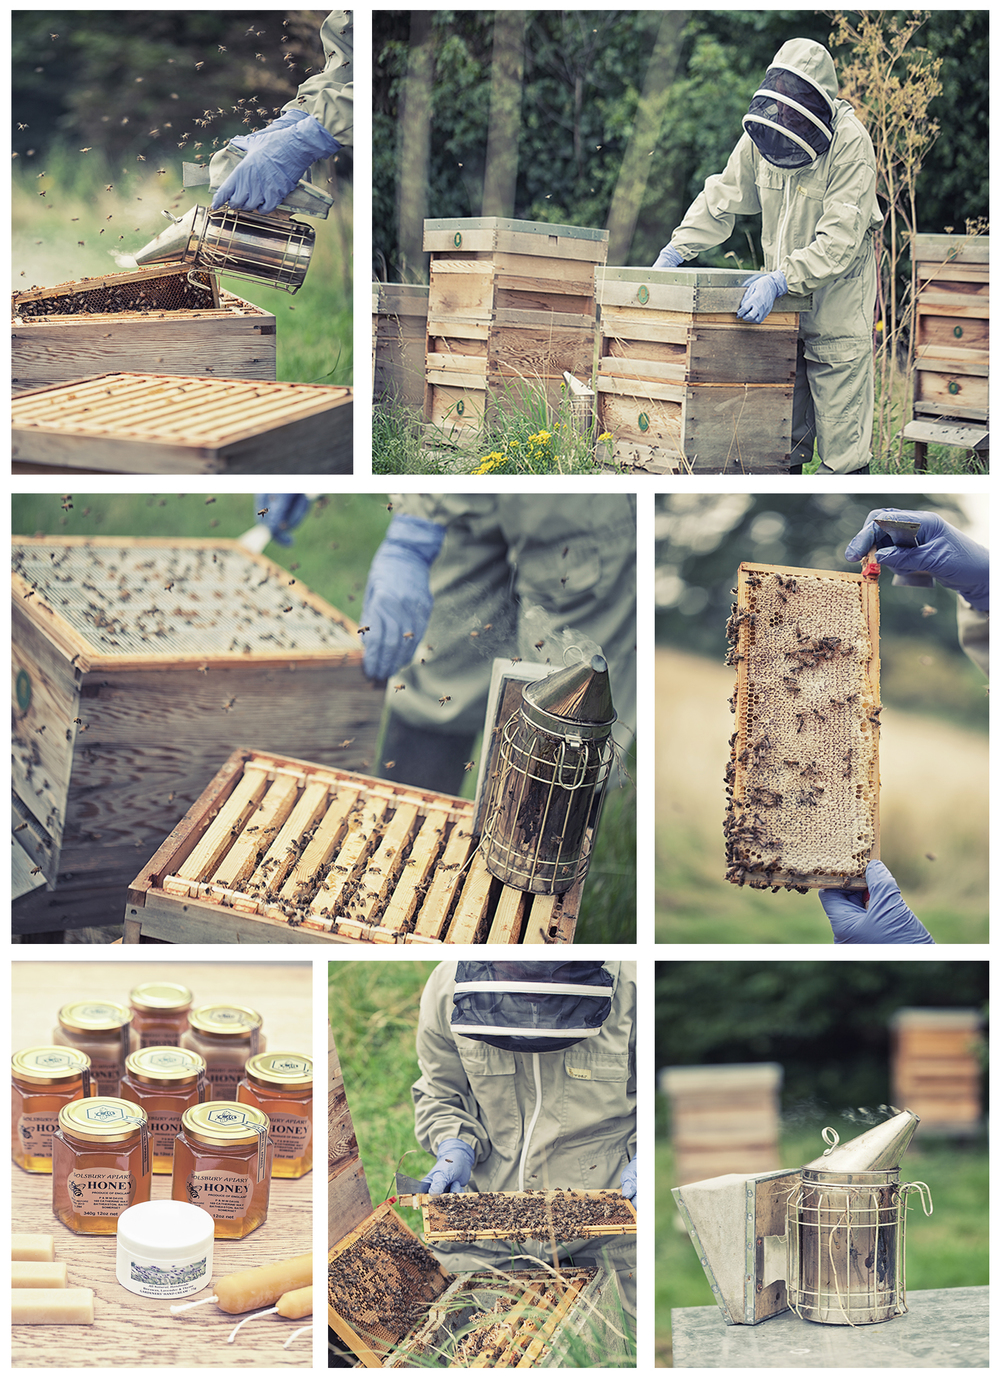 Pete Davis from the Bath BeeKeepers Association, and his Solsbury Honey